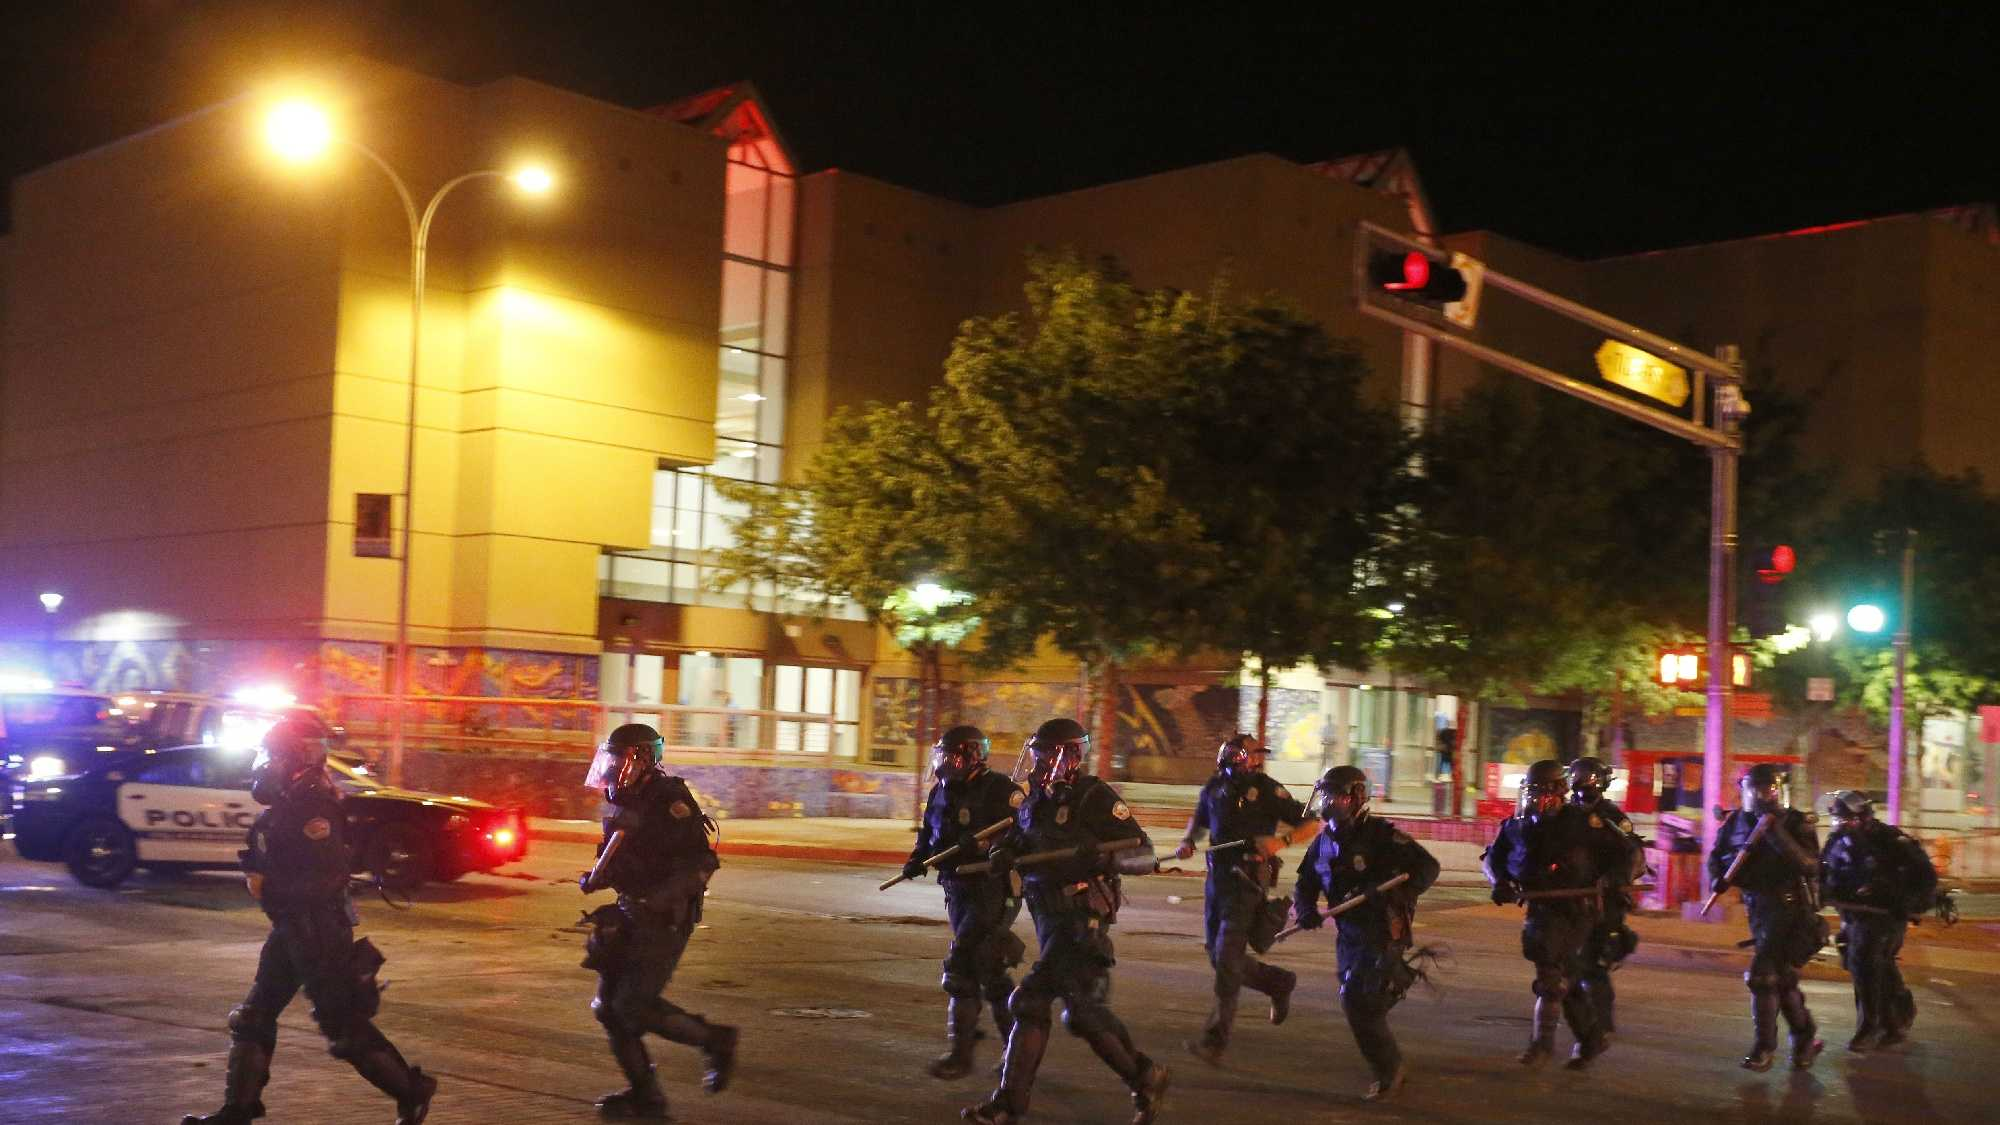 Riot police respond to anti-Trump protests following a rally and speech by Republican presidential candidate Donald Trump, in front of the Albuquerque Convention Center where the event was held, in Albuquerque.